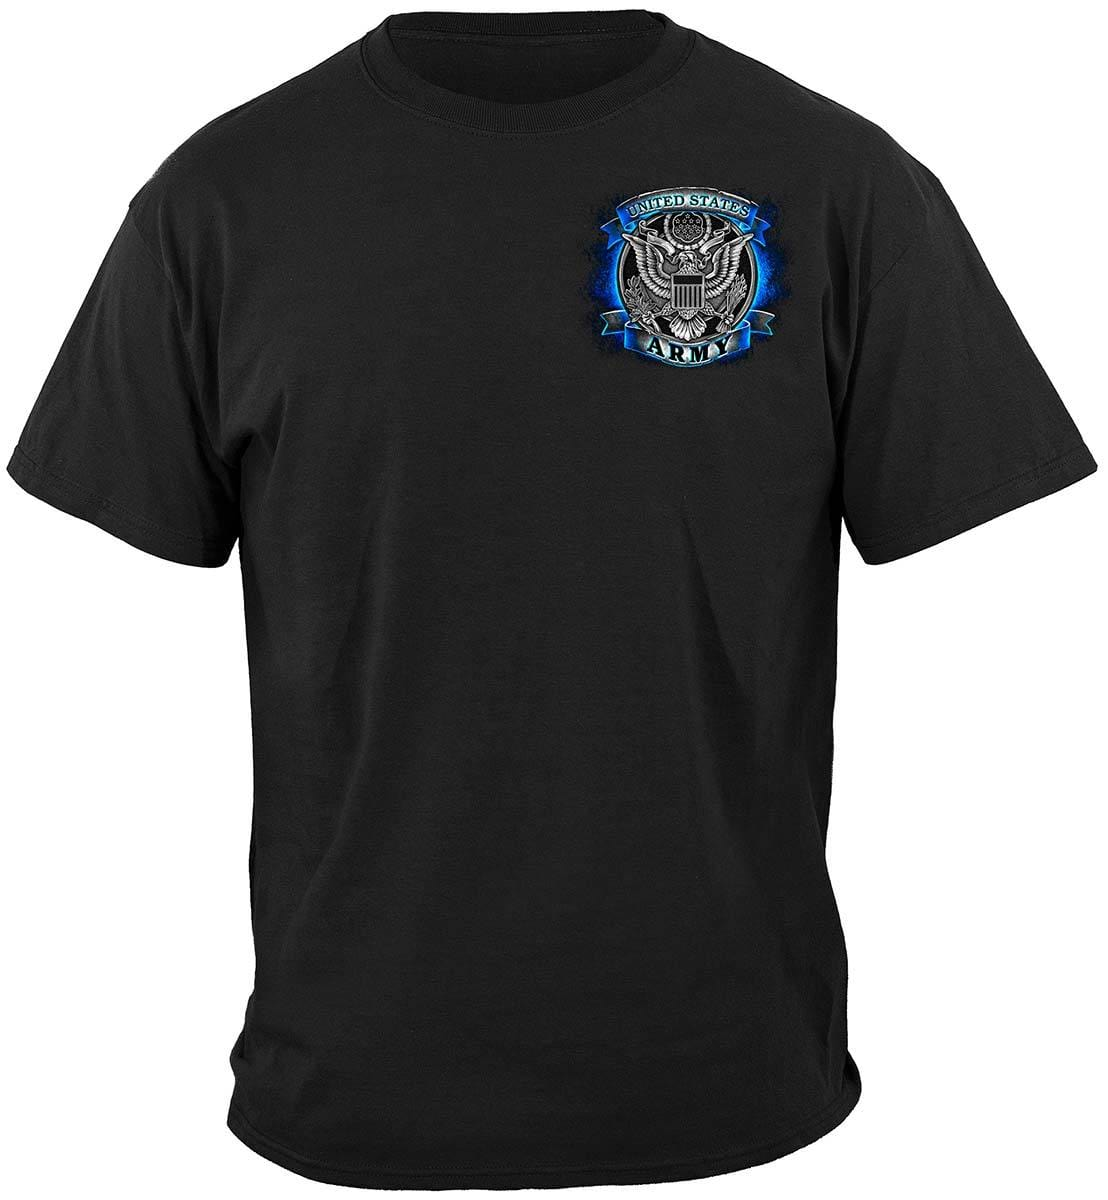 True Heroes Army Premium T-Shirt